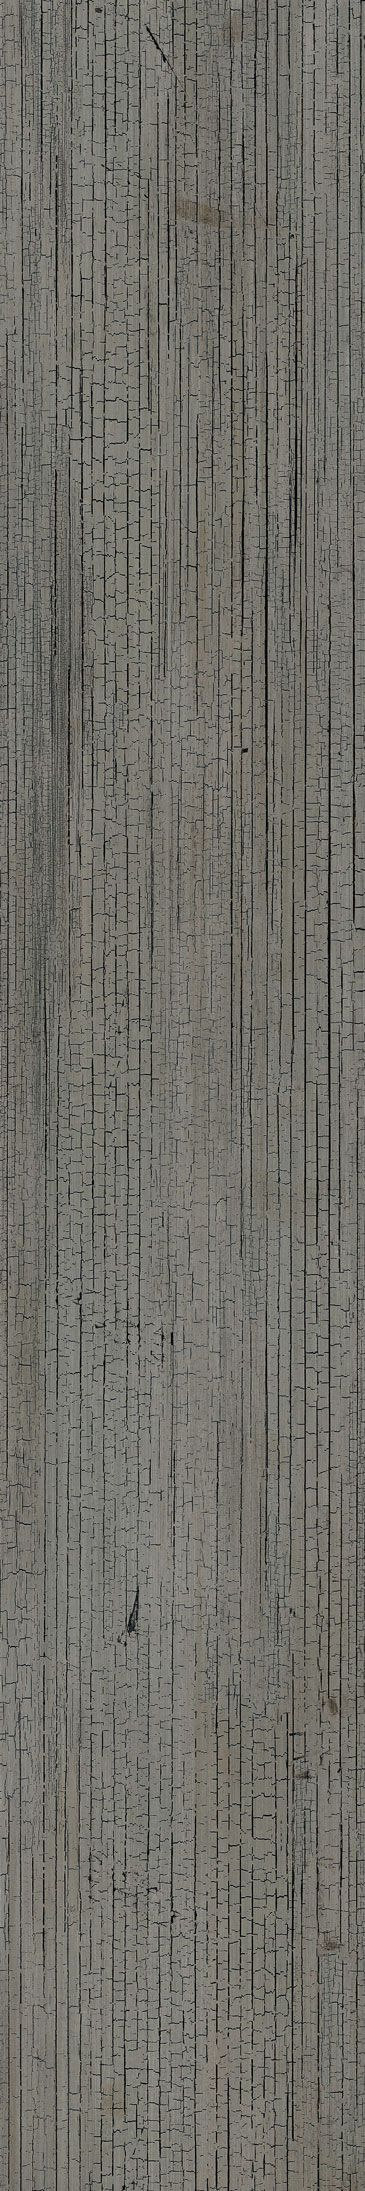 Yaki collection-porcelain mimics the traditional japanese charred wood